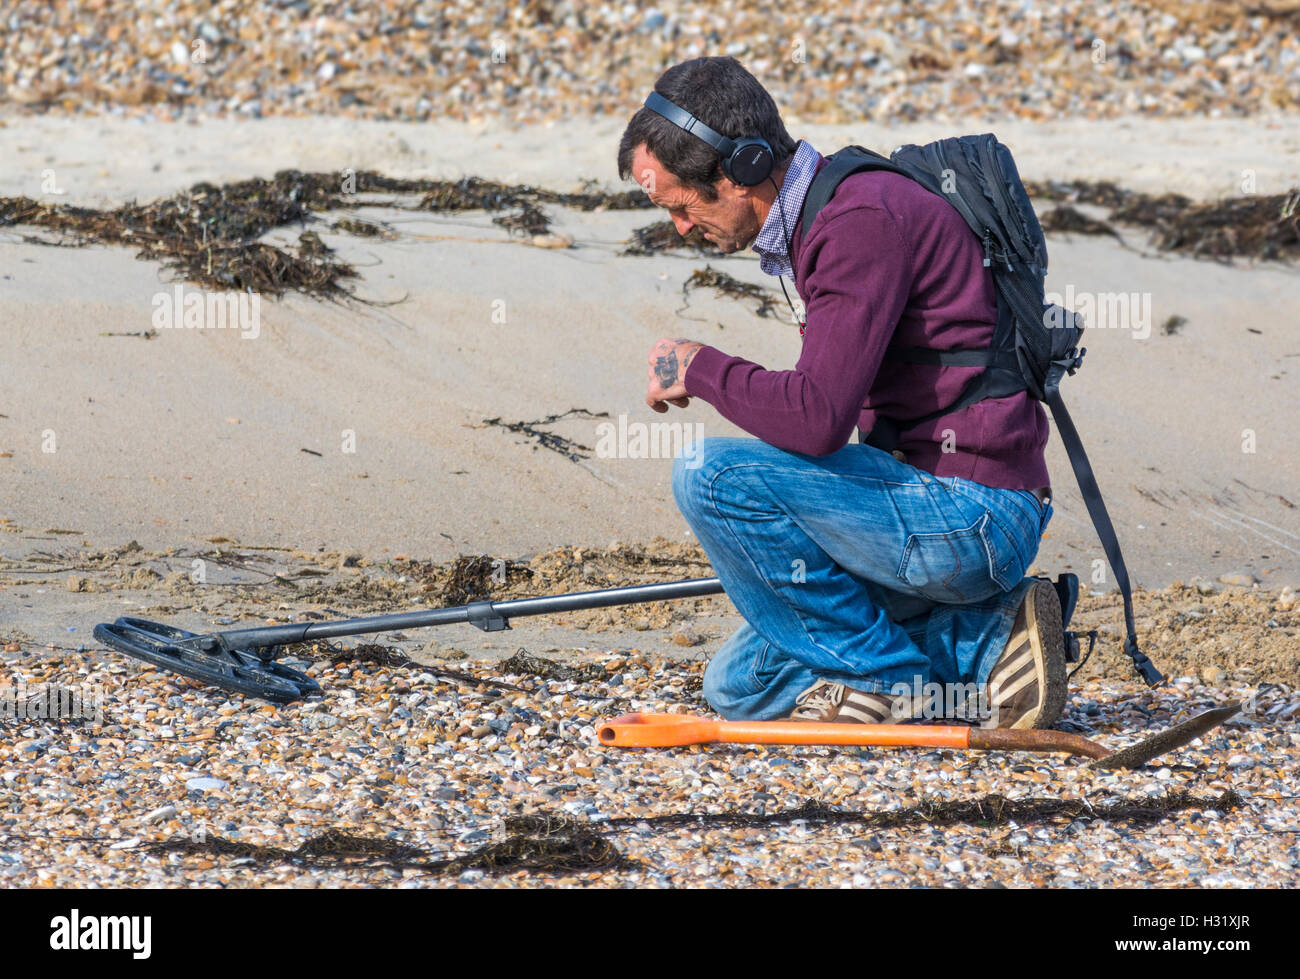 Man looking for treasure with a metal detector on a beach. - Stock Image